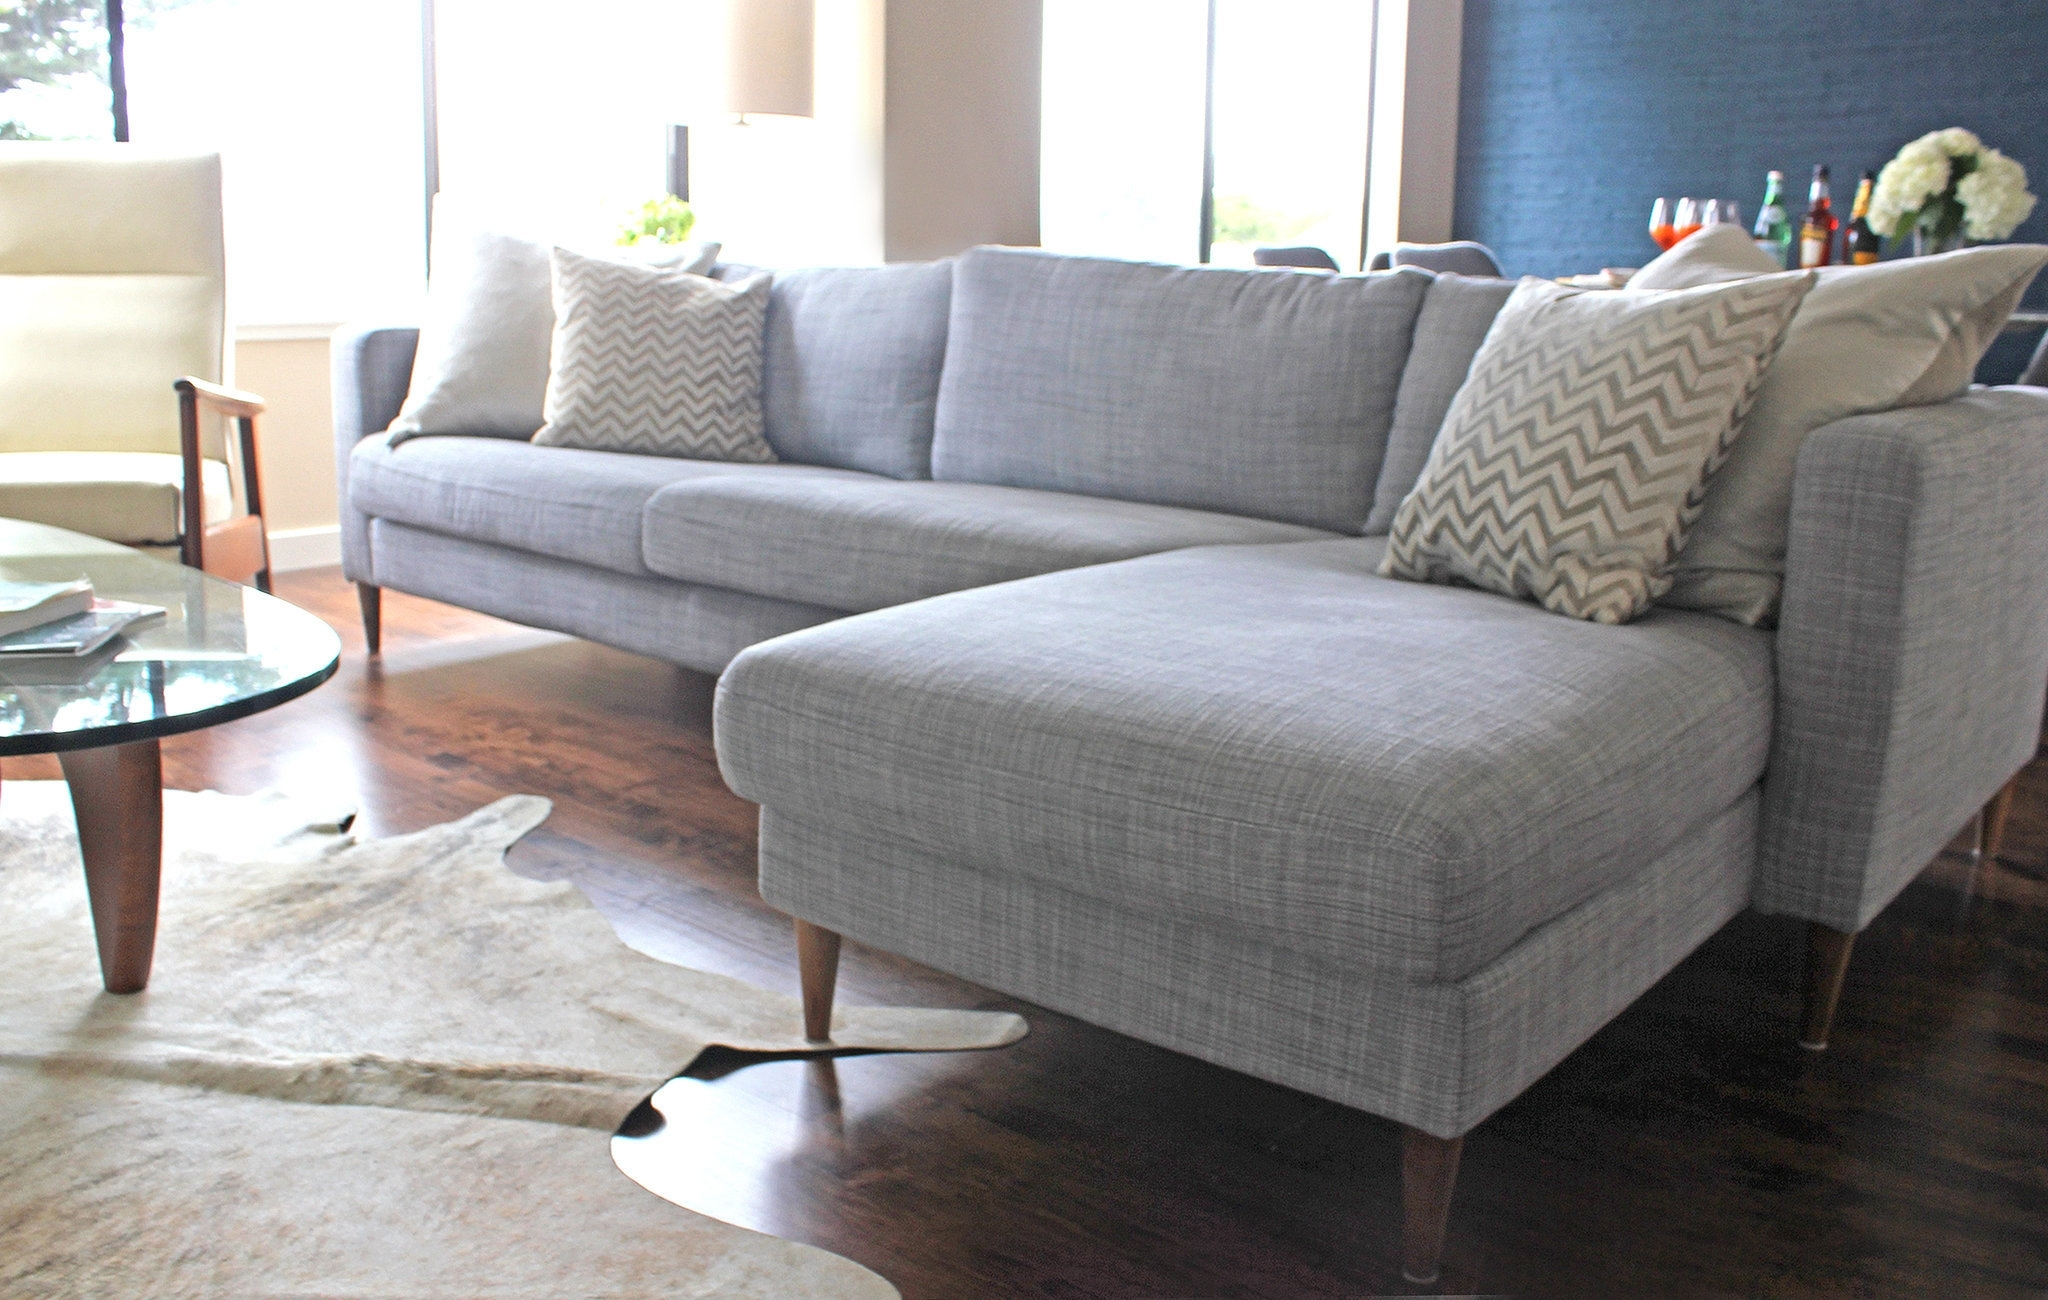 Karlstad Chaises Pertaining To Well Liked Stunning Ikea Karlstad Sofa For Dress Up An Ikea Sofareplacing (View 3 of 15)